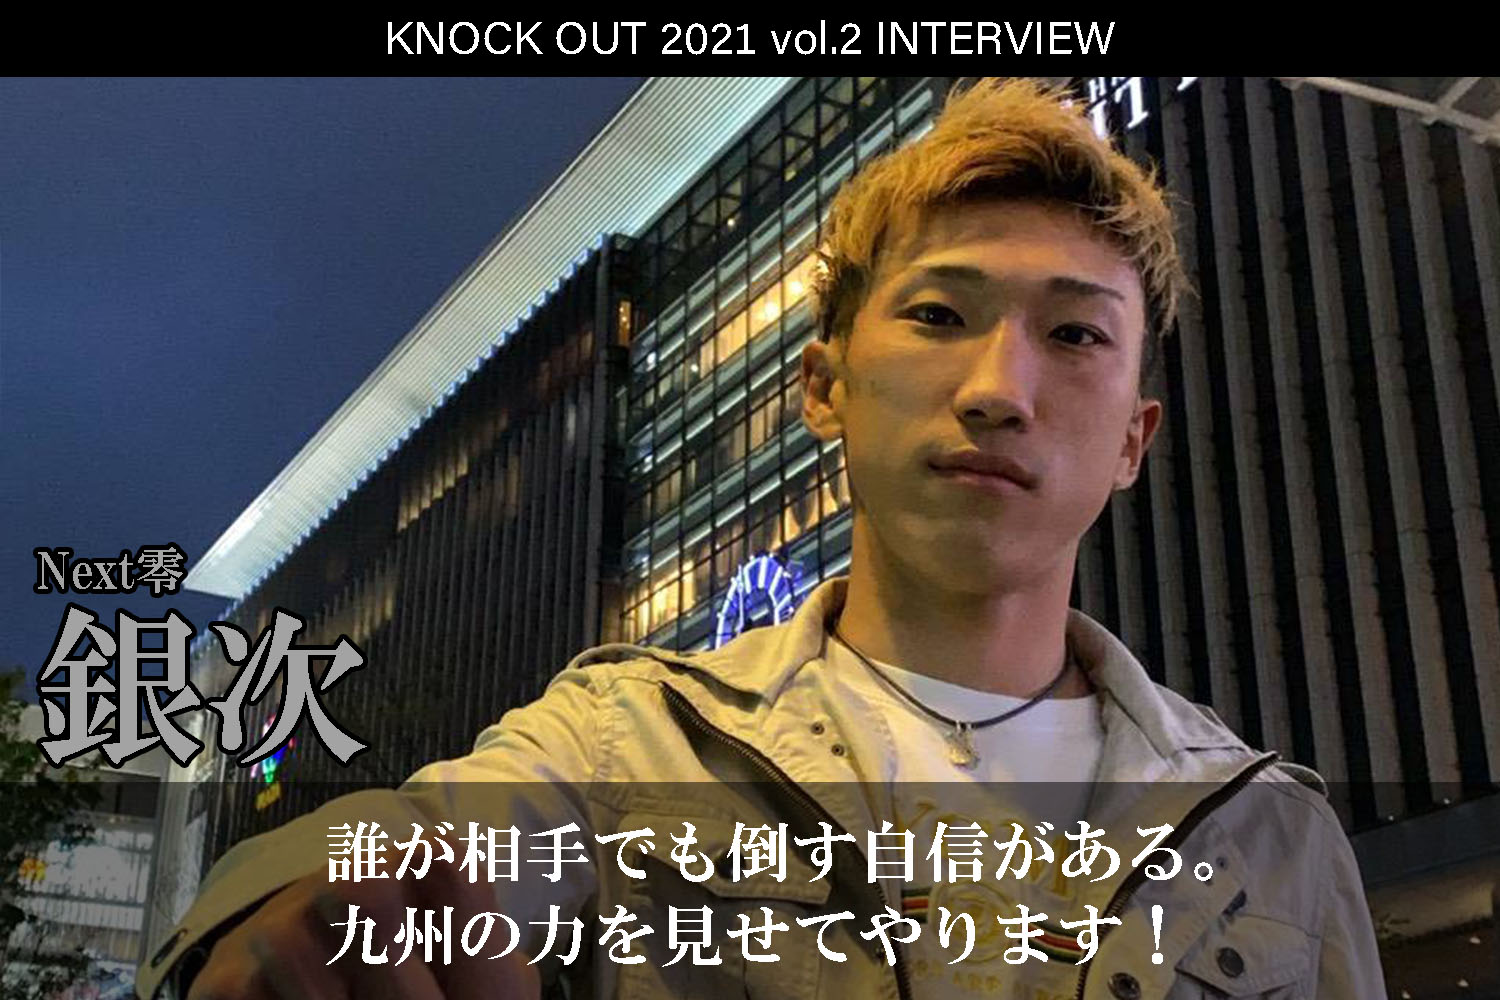 4.25 KNOCK OUT 2021 vol.2 銀次インタビュー公開!